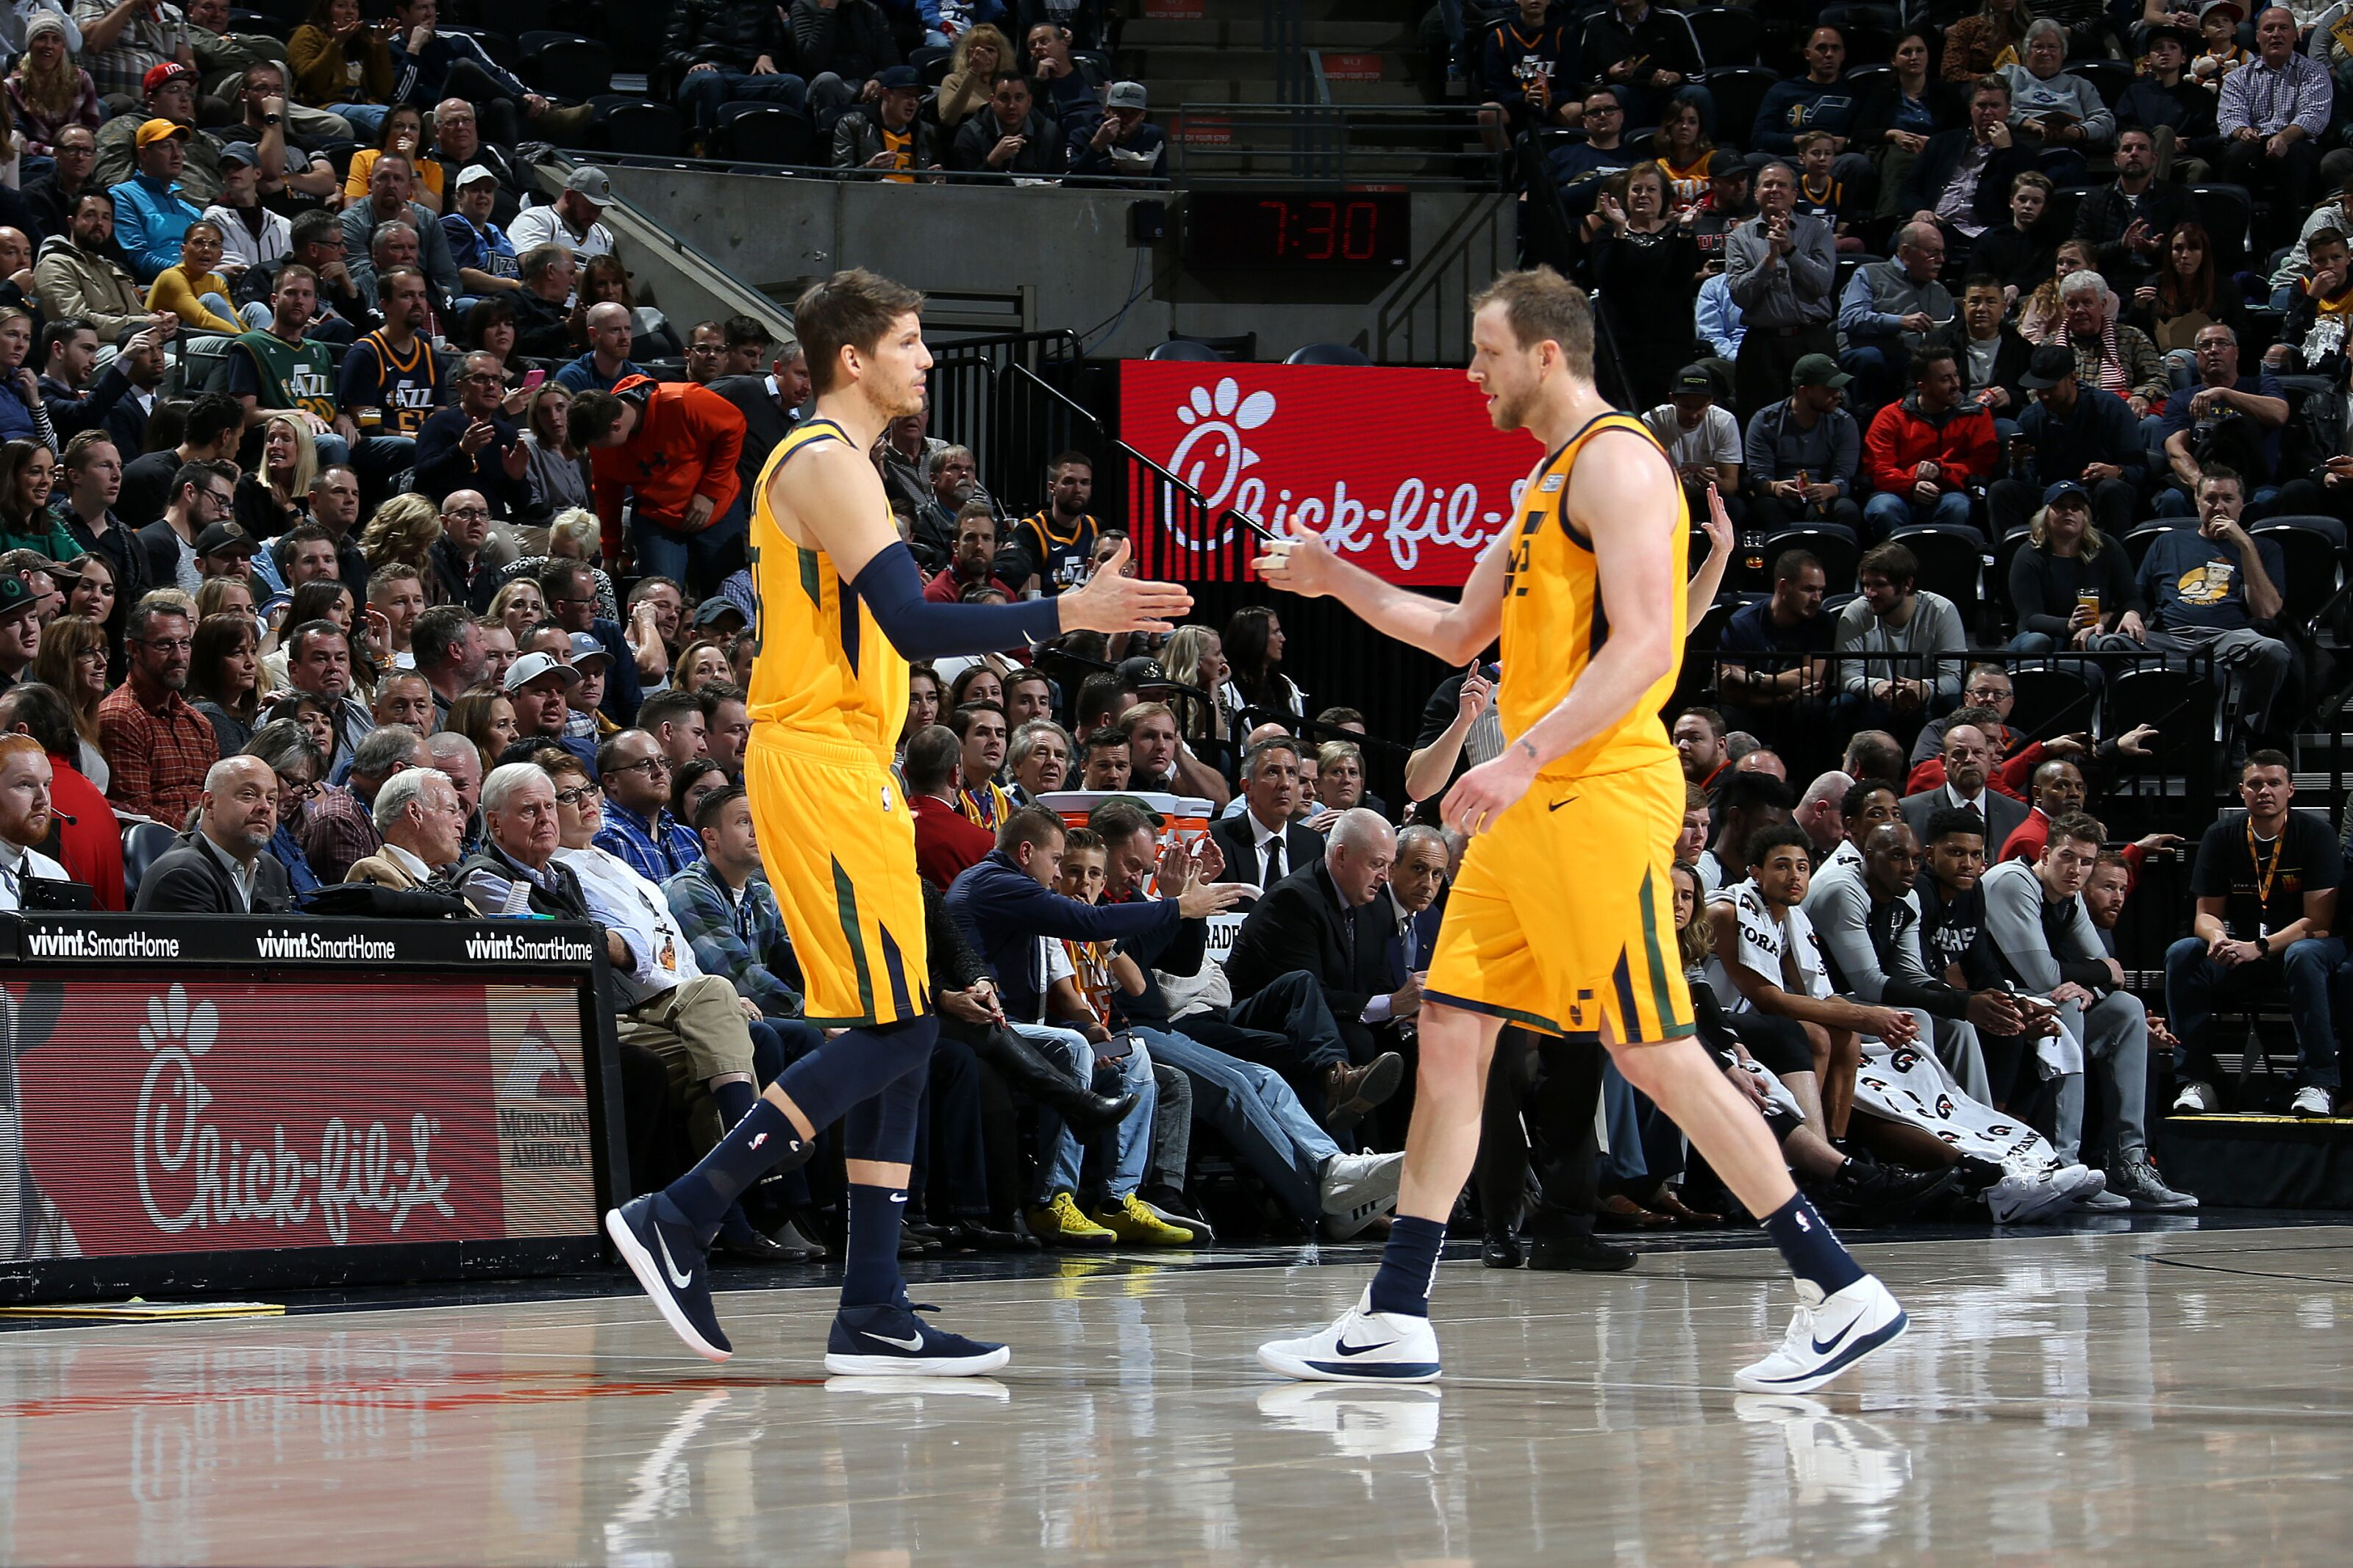 reputable site 34539 3bcf0 Utah Jazz: 'Splash Uncles' have been disappointing vs. Houston